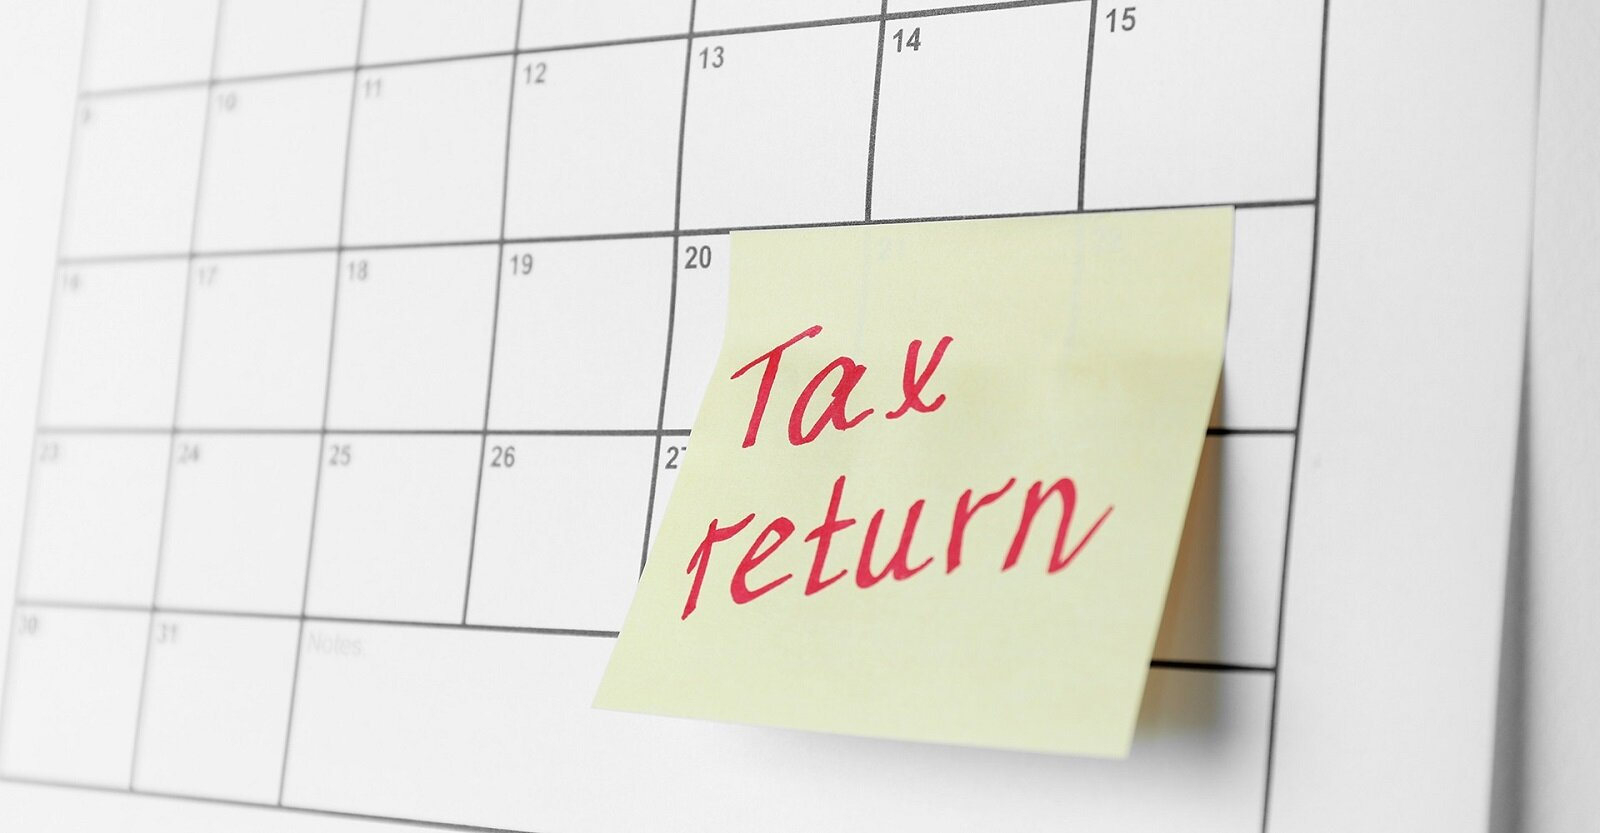 Tax seasons is approaching, we can help you prepare!